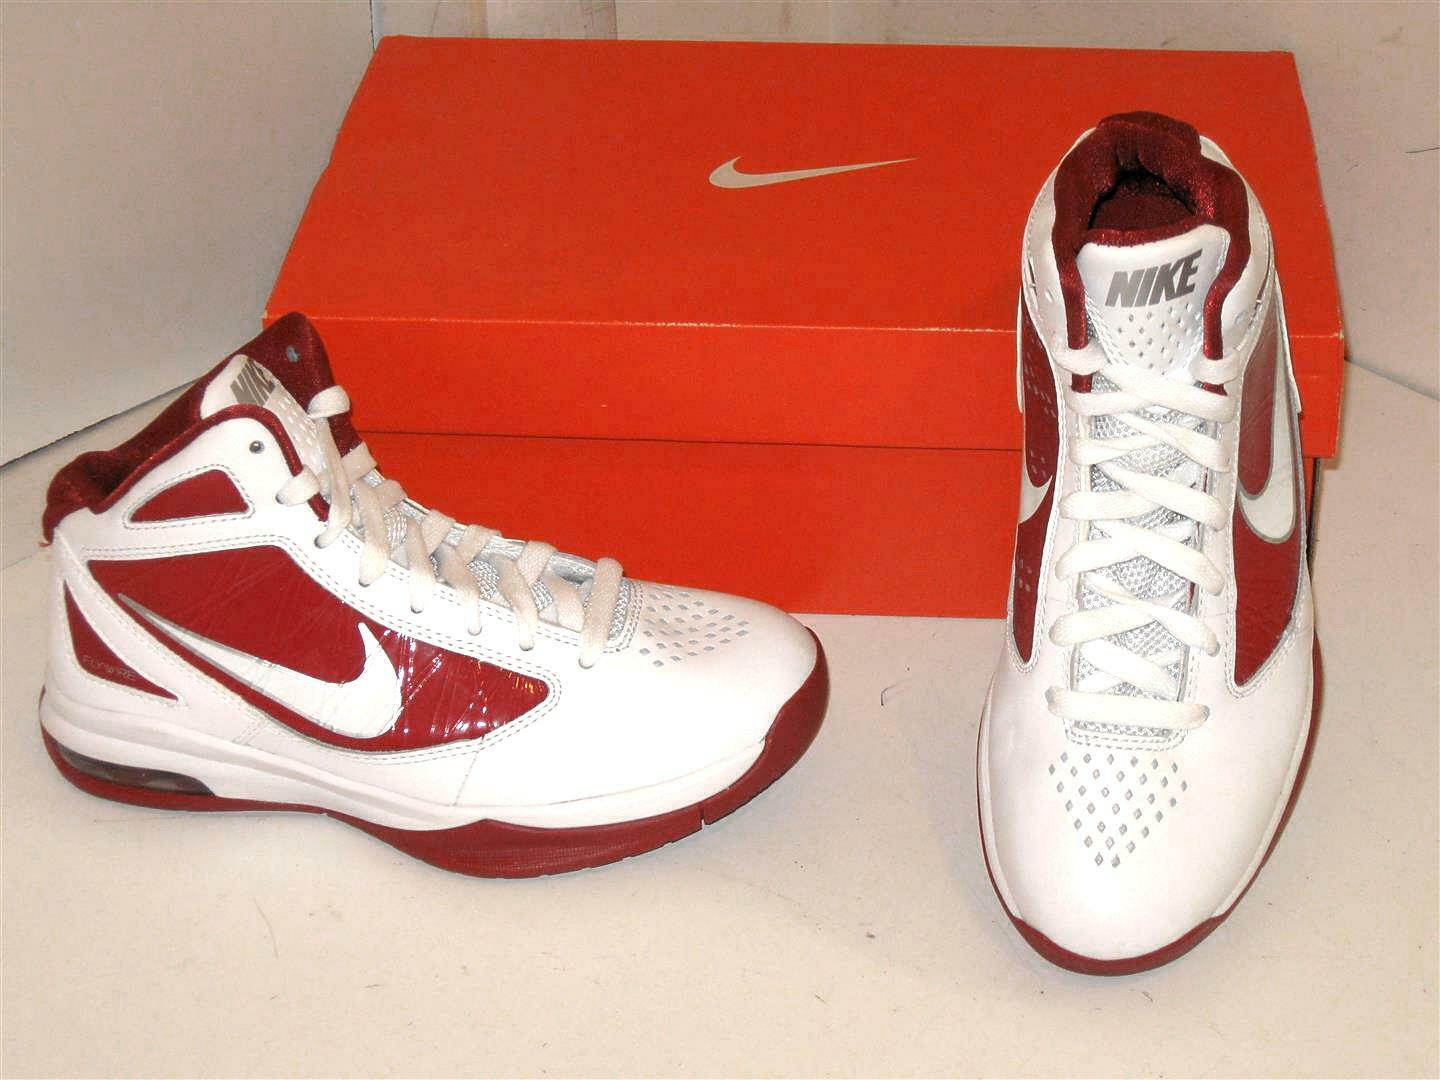 Nike Air Max Destiny TB Basketball White & Red Sneakers Athletic Shoes Mens 17 Seasonal clearance sale